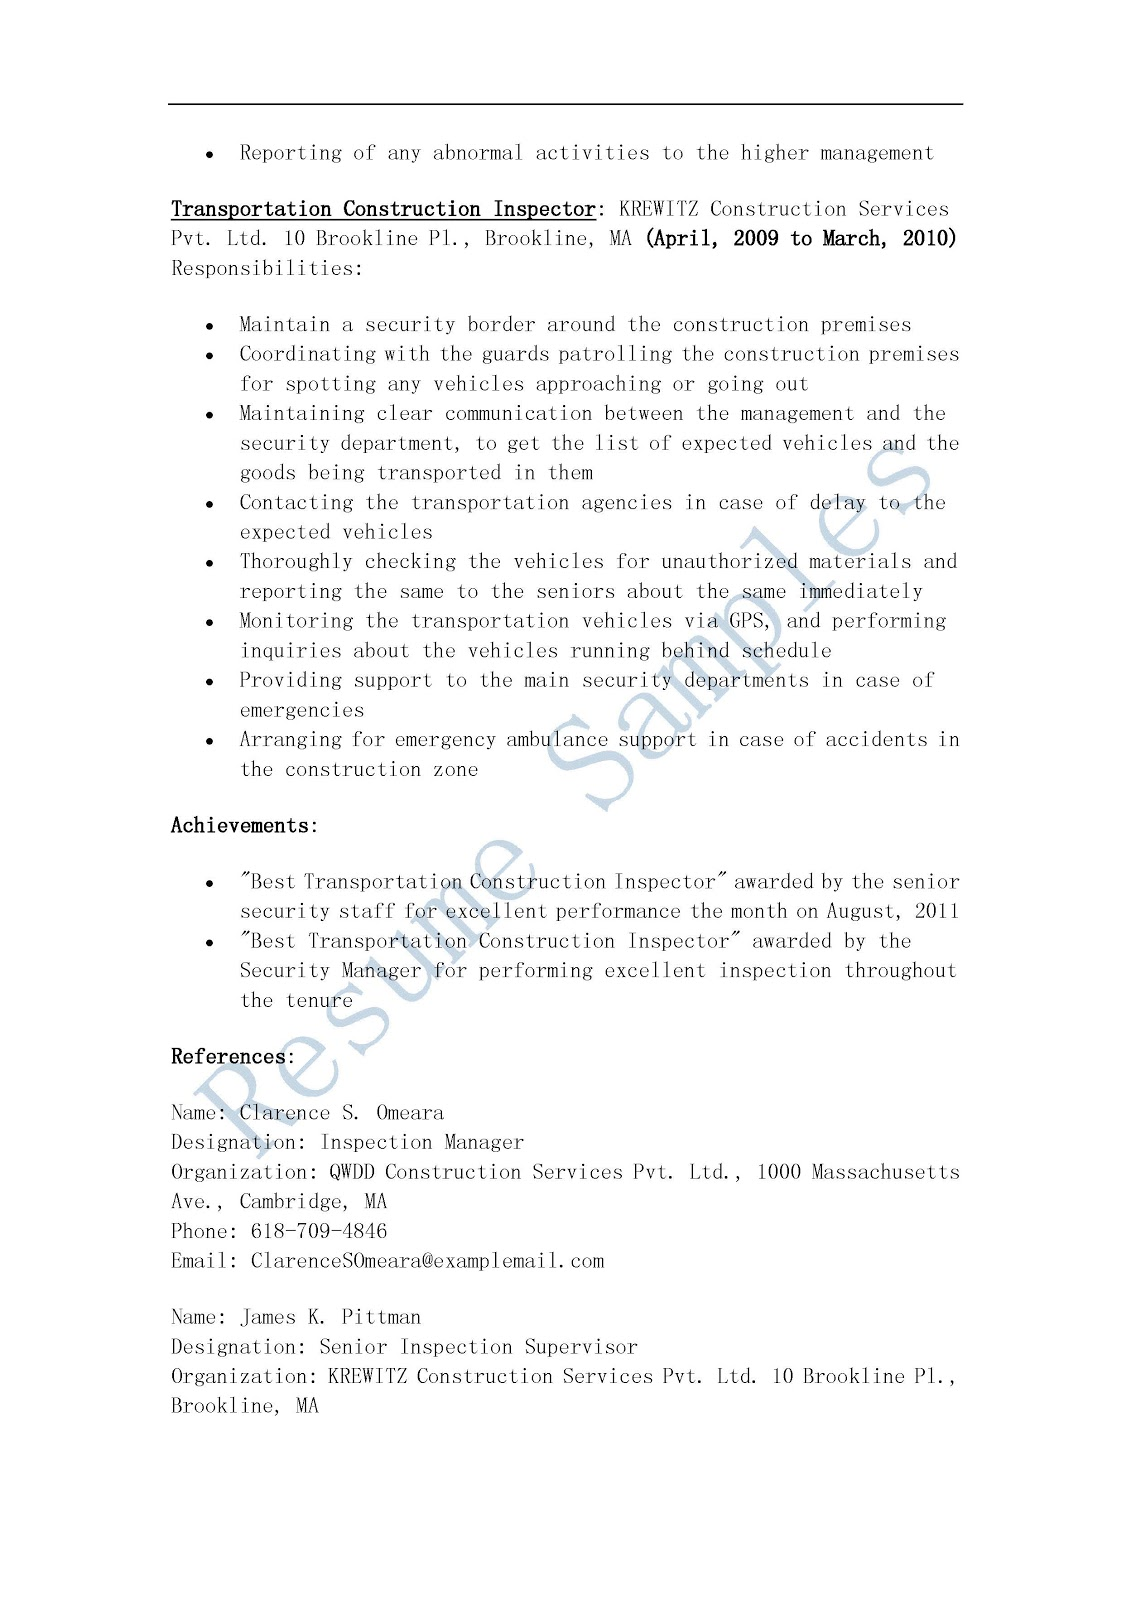 safety inspector resume